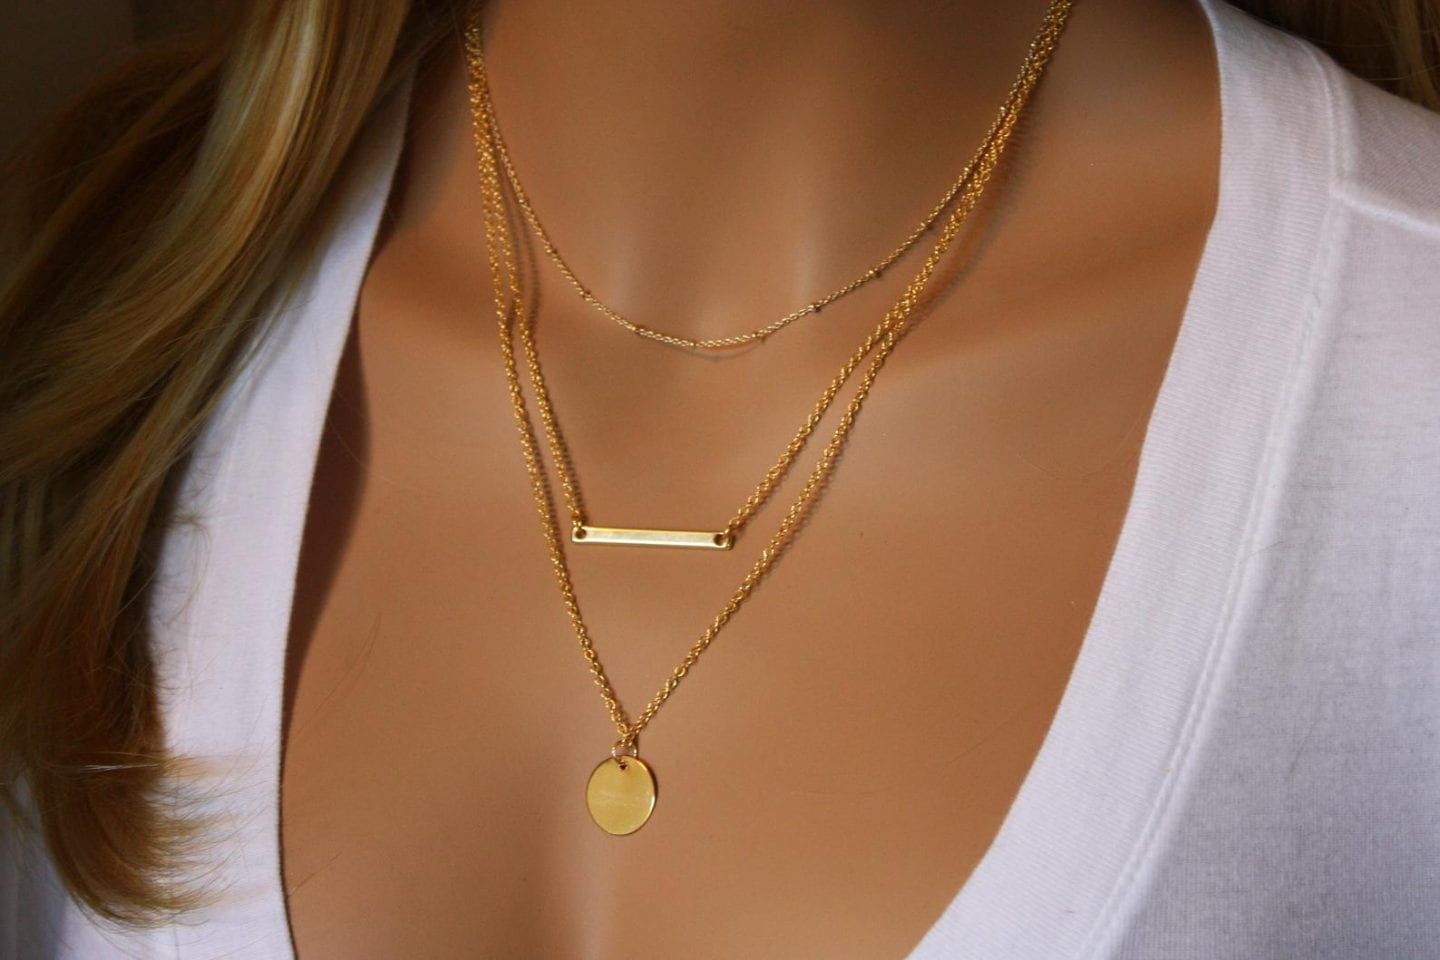 Initial Jewelry by popular San Francisco fashion blog, Just Add Glam: image of a initial monogram bar set of 3 necklaces.